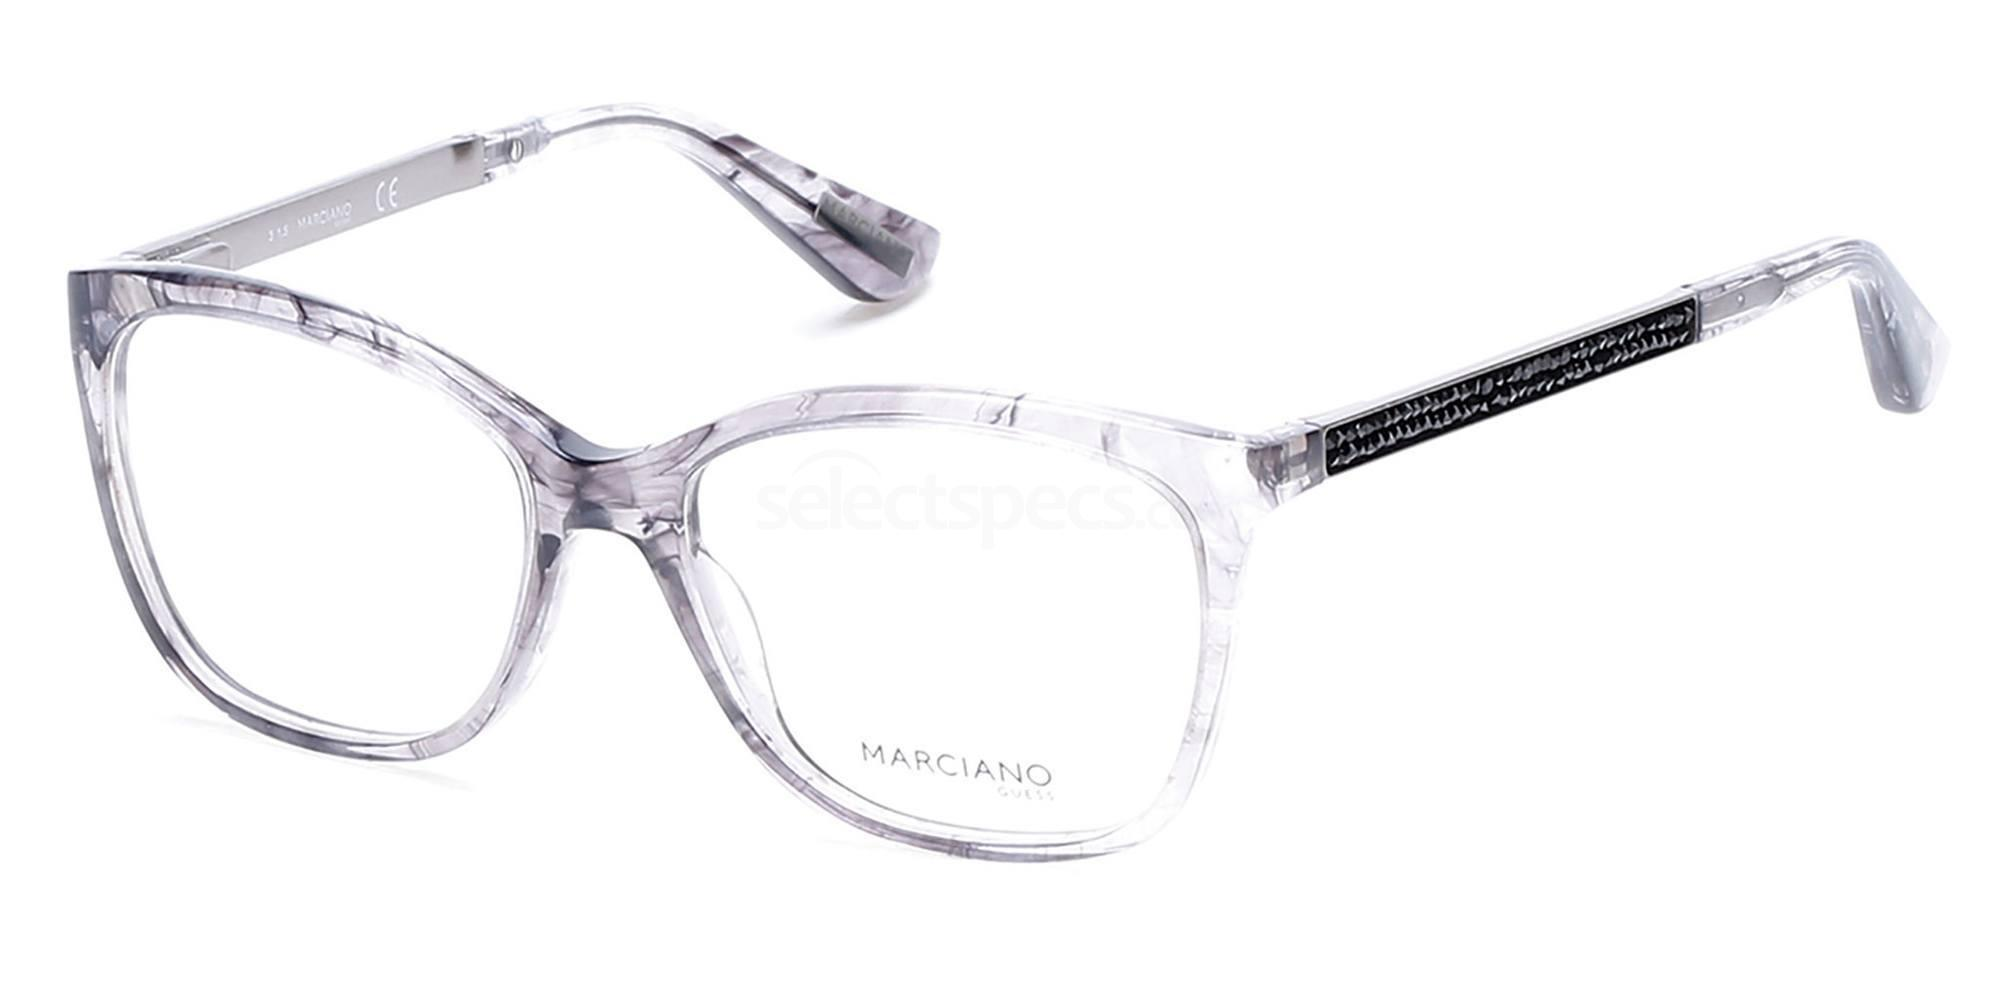 020 GM0281 Glasses, Guess by Marciano